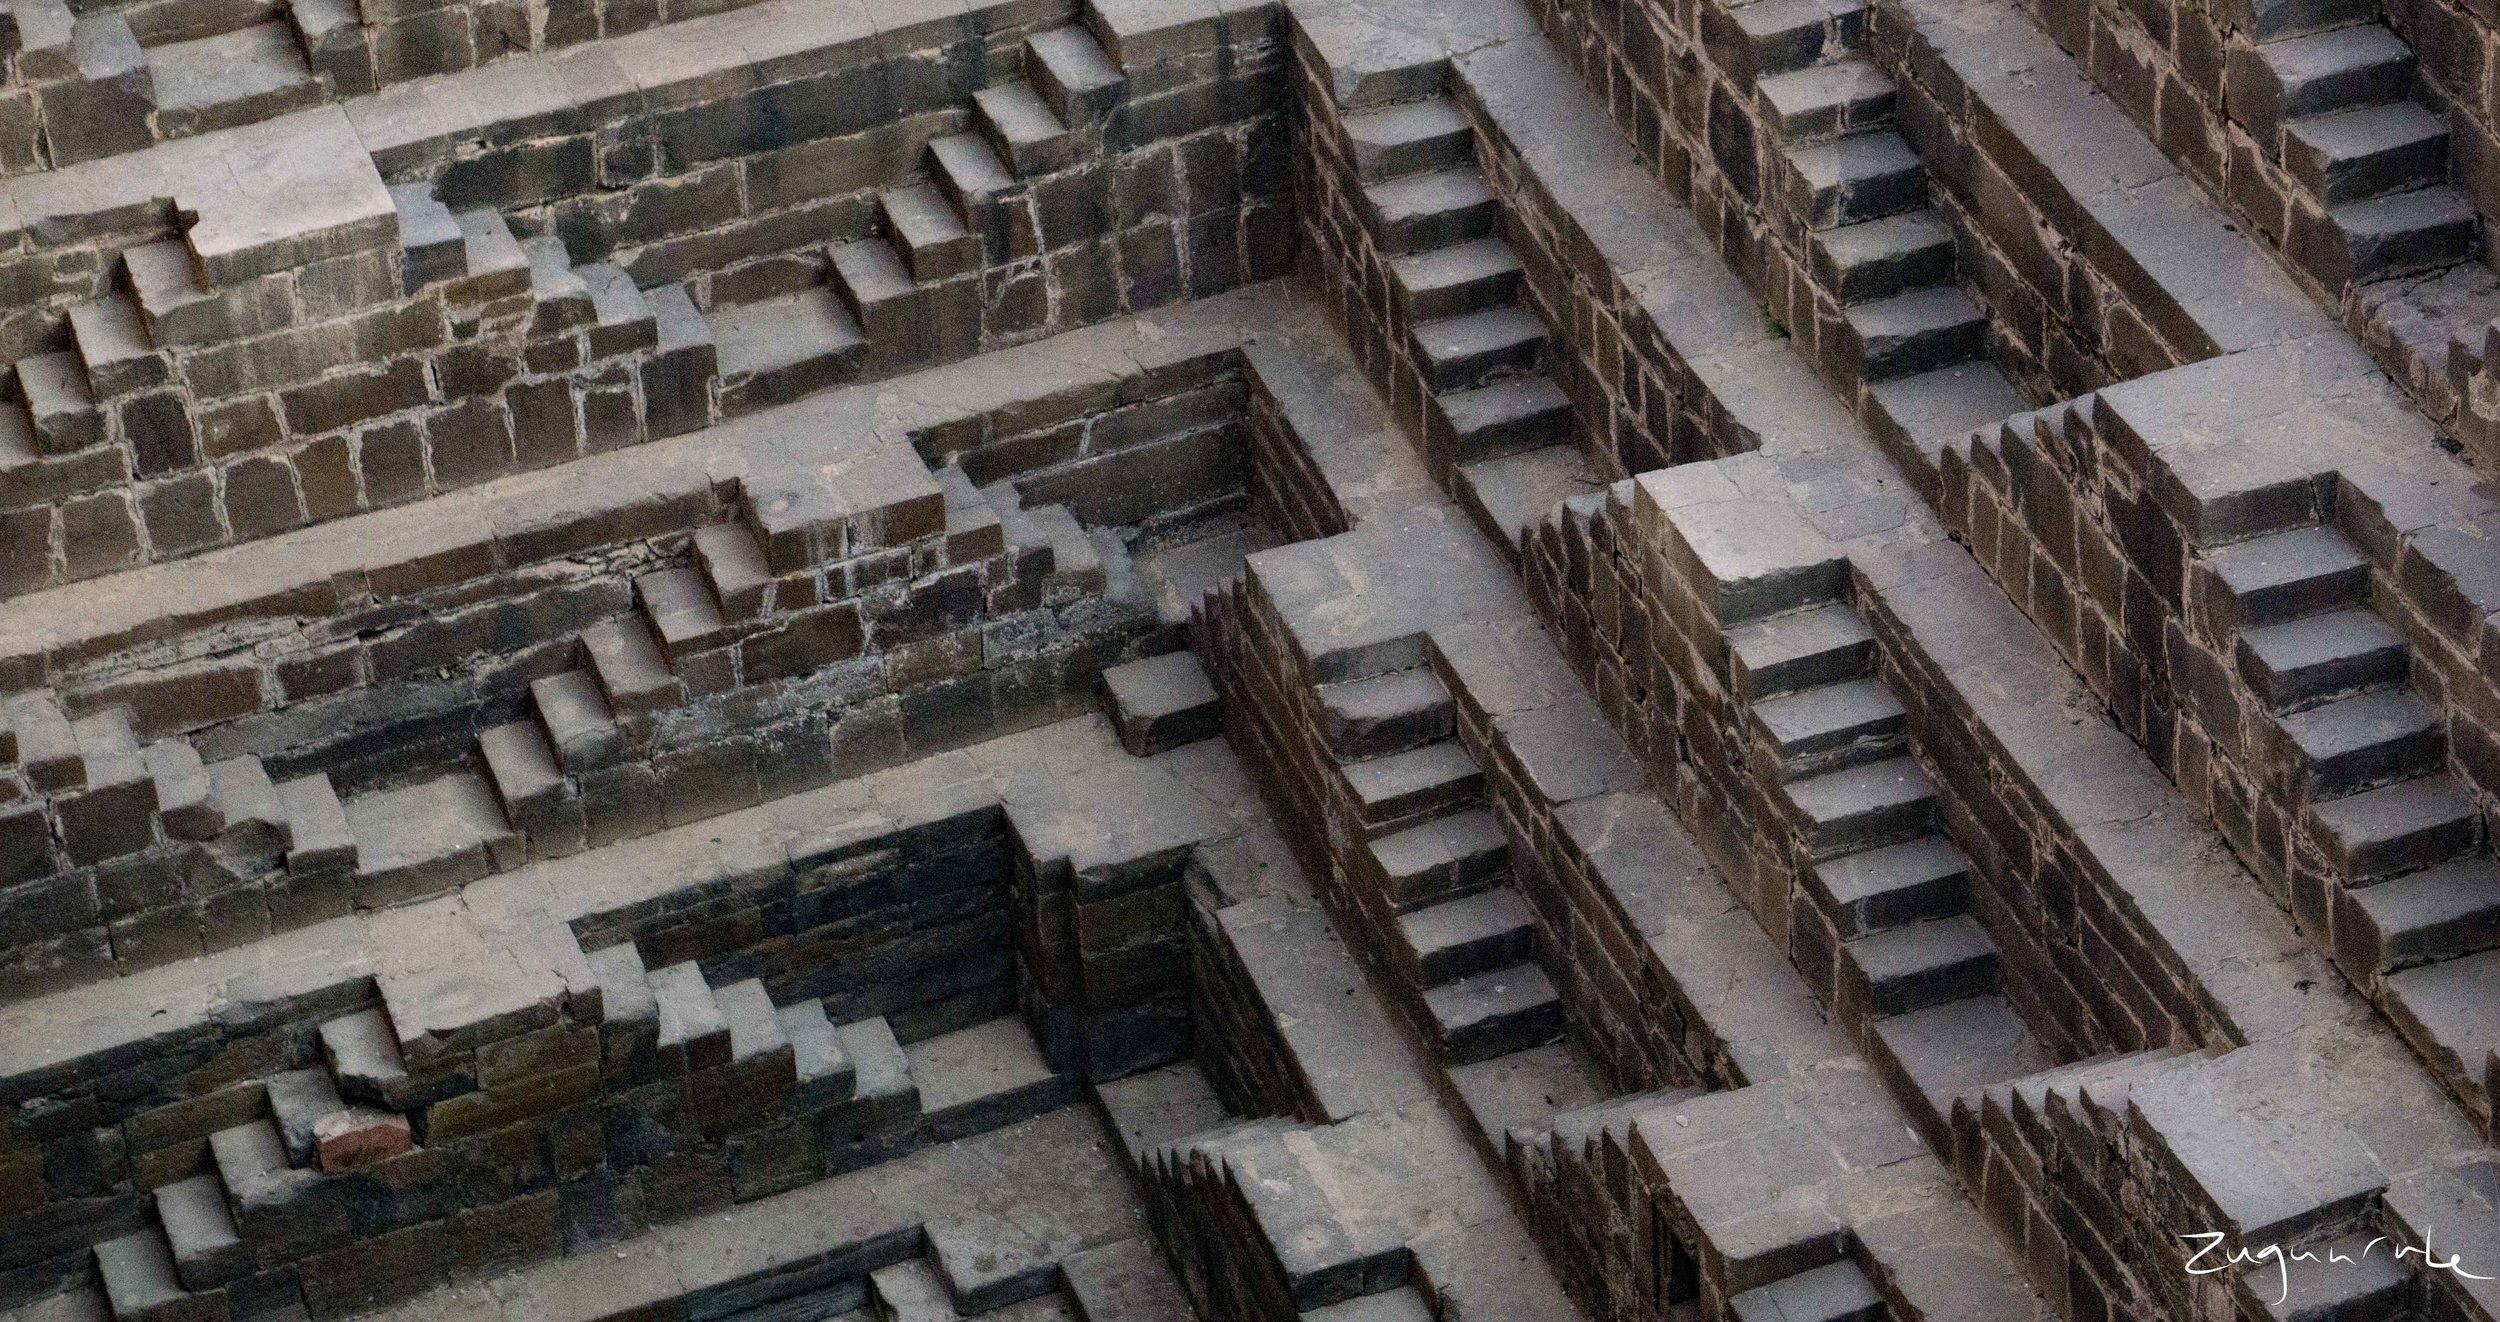 Chand Baori between Jaipur and Agra